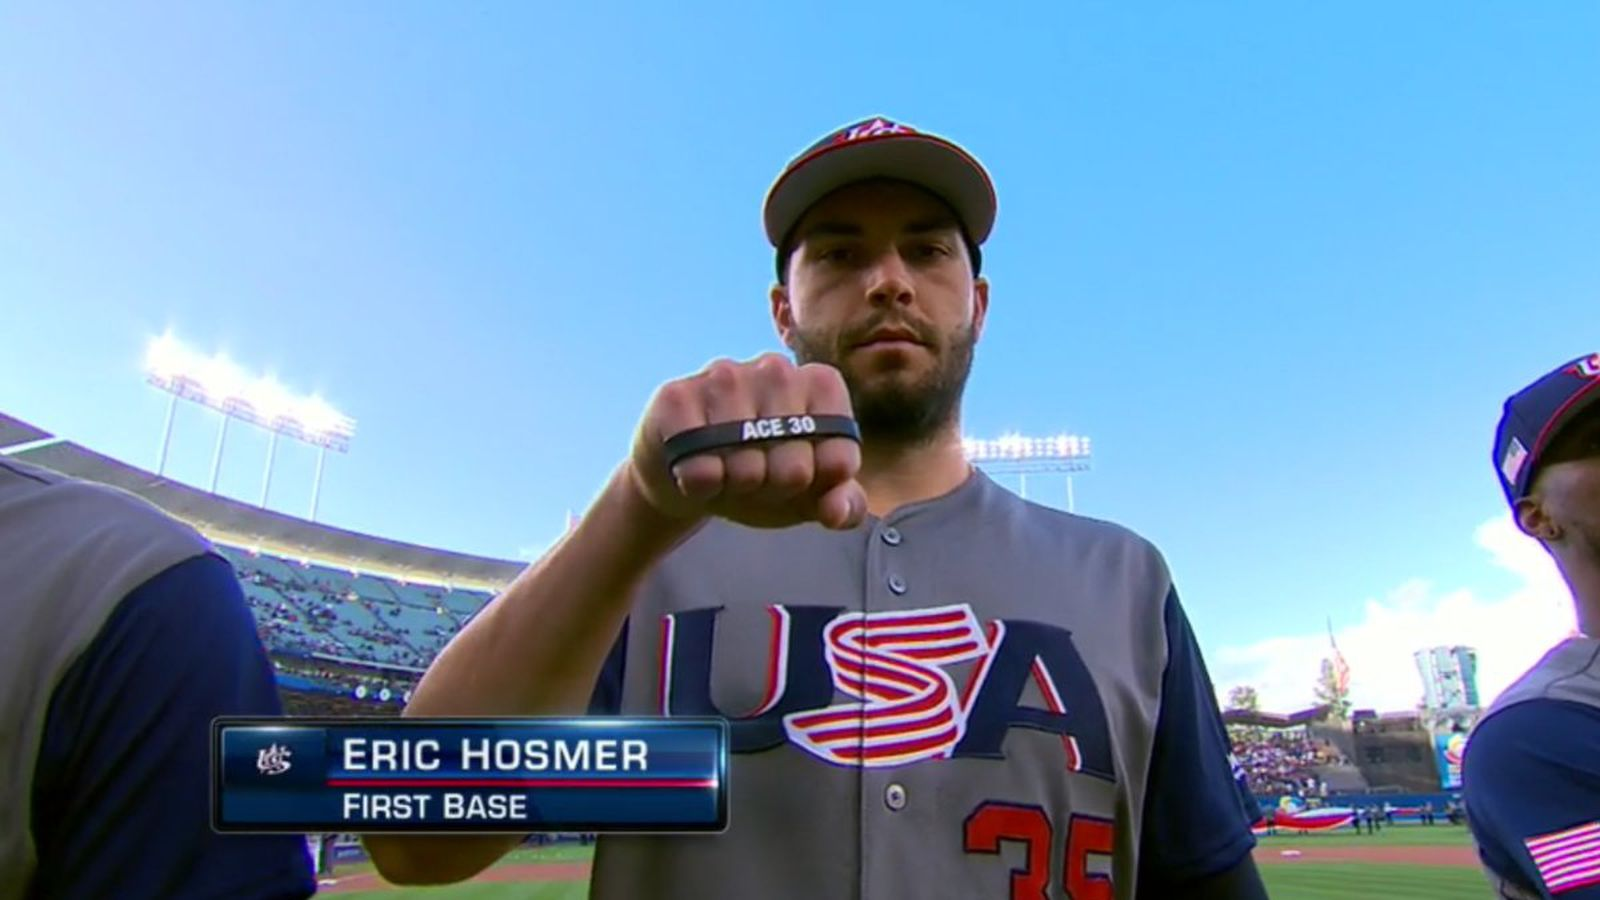 Eric Hosmer With The Yordano Ventura Tribute For WBC